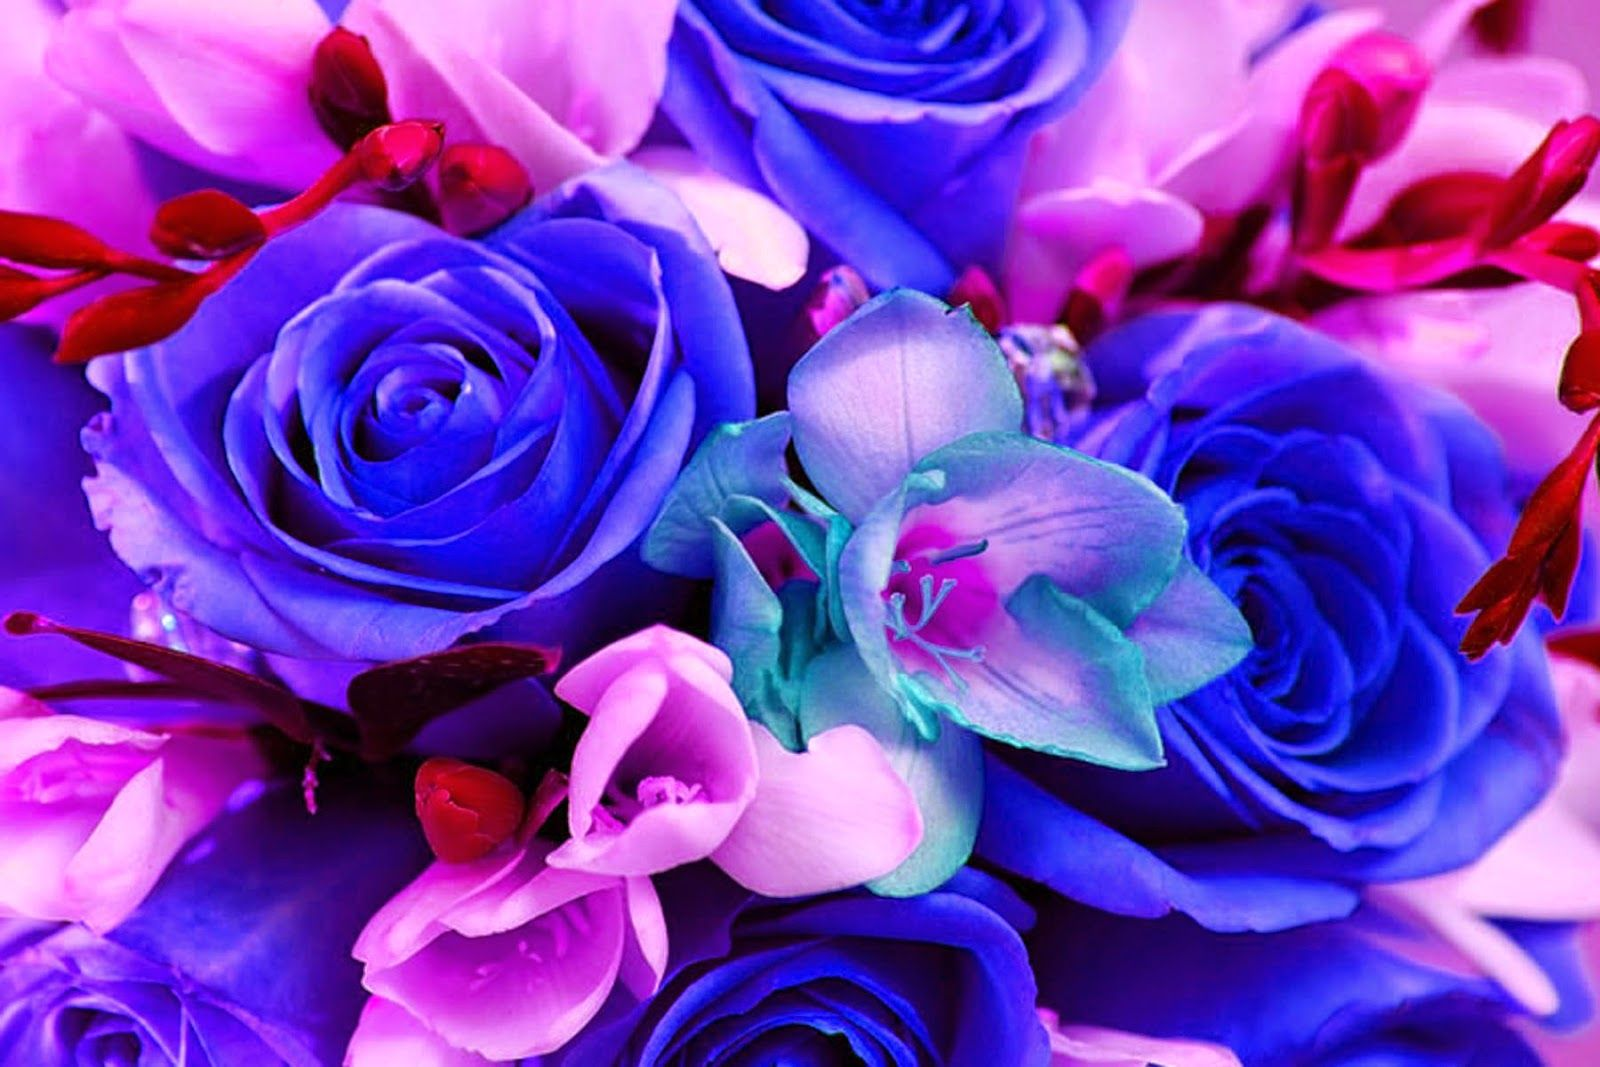 Colorful Bouquet of Flowers Wallpaper Background! Blue